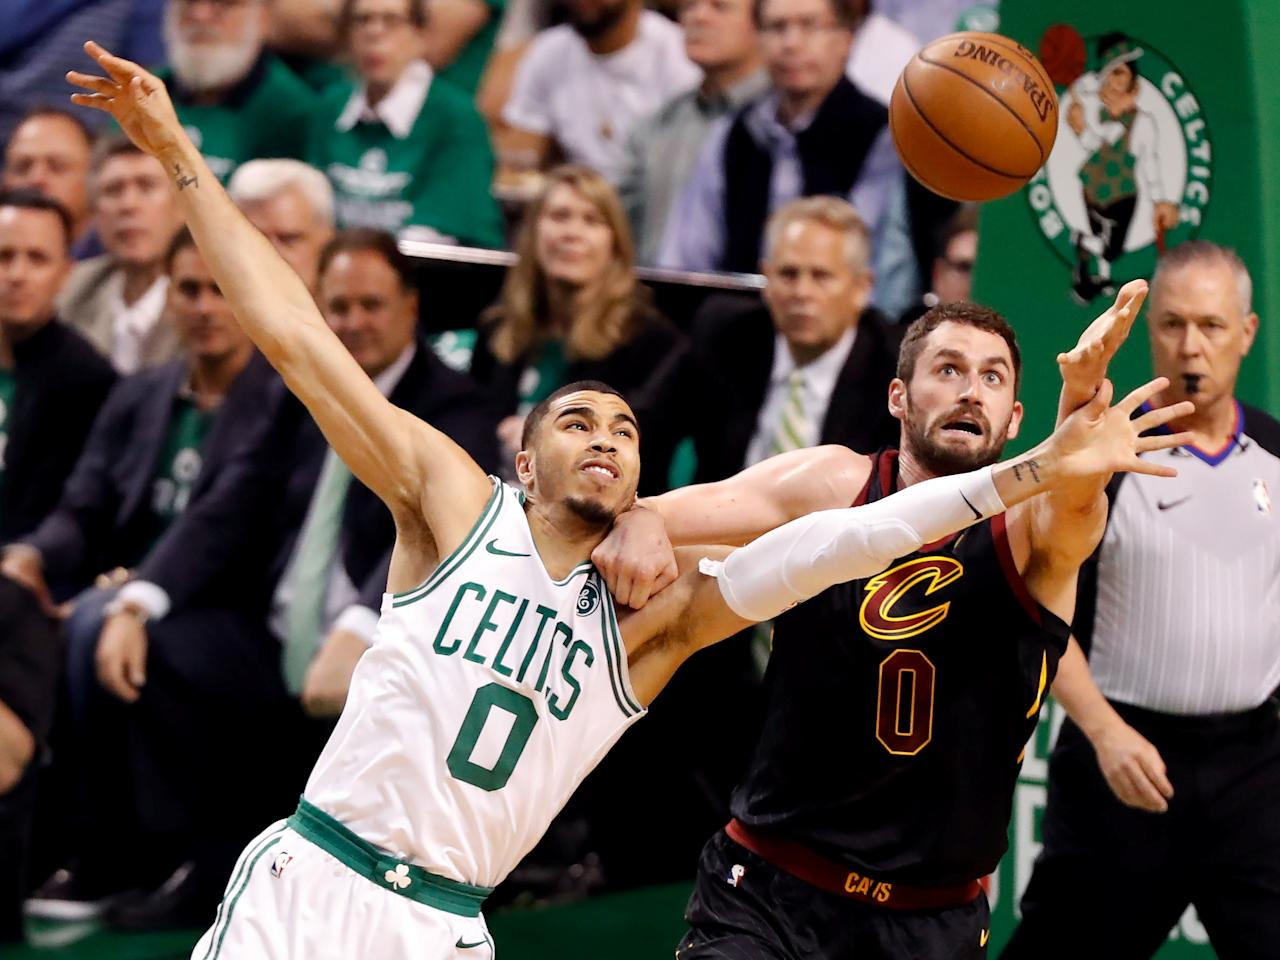 May 23, 2018; Boston, MA, USA; Cleveland Cavaliers center Kevin Love (0) and Boston Celtics forward Jayson Tatum (0) reach for a rebound during the first quarter of game five of the Eastern conference finals of the 2018 NBA Playoffs at TD Garden. Mandatory Credit: Winslow Townson-USA TODAY Sports     TPX IMAGES OF THE DAY